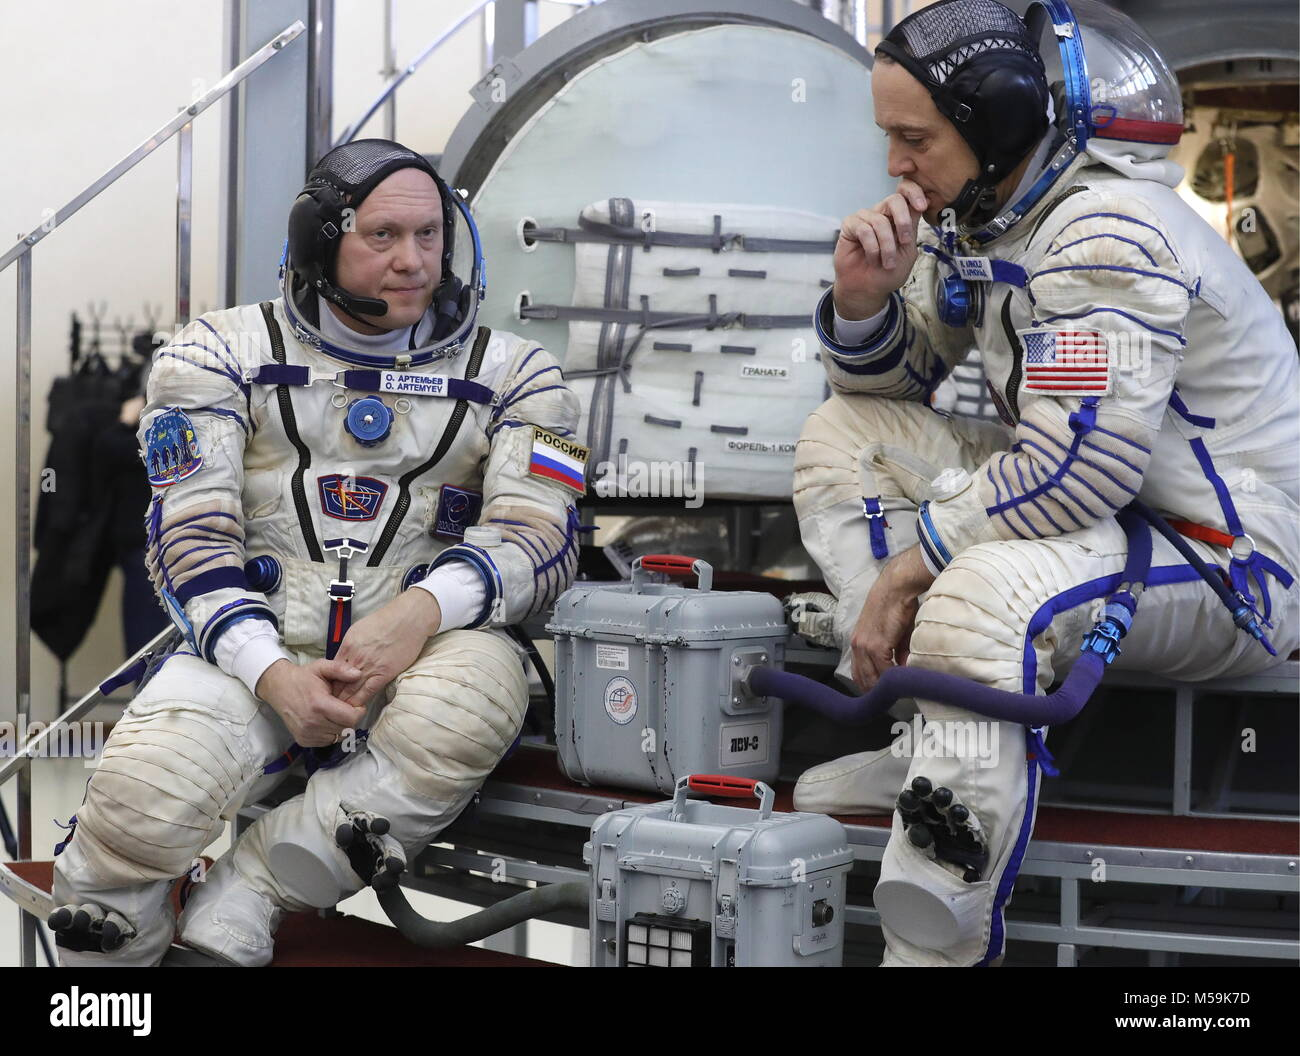 Moscow Region, Roscosmos cosmonaut Oleg Artemyev (L) and NASA astronaut Richard Arnold, members of the ISS Expedition - Stock Image